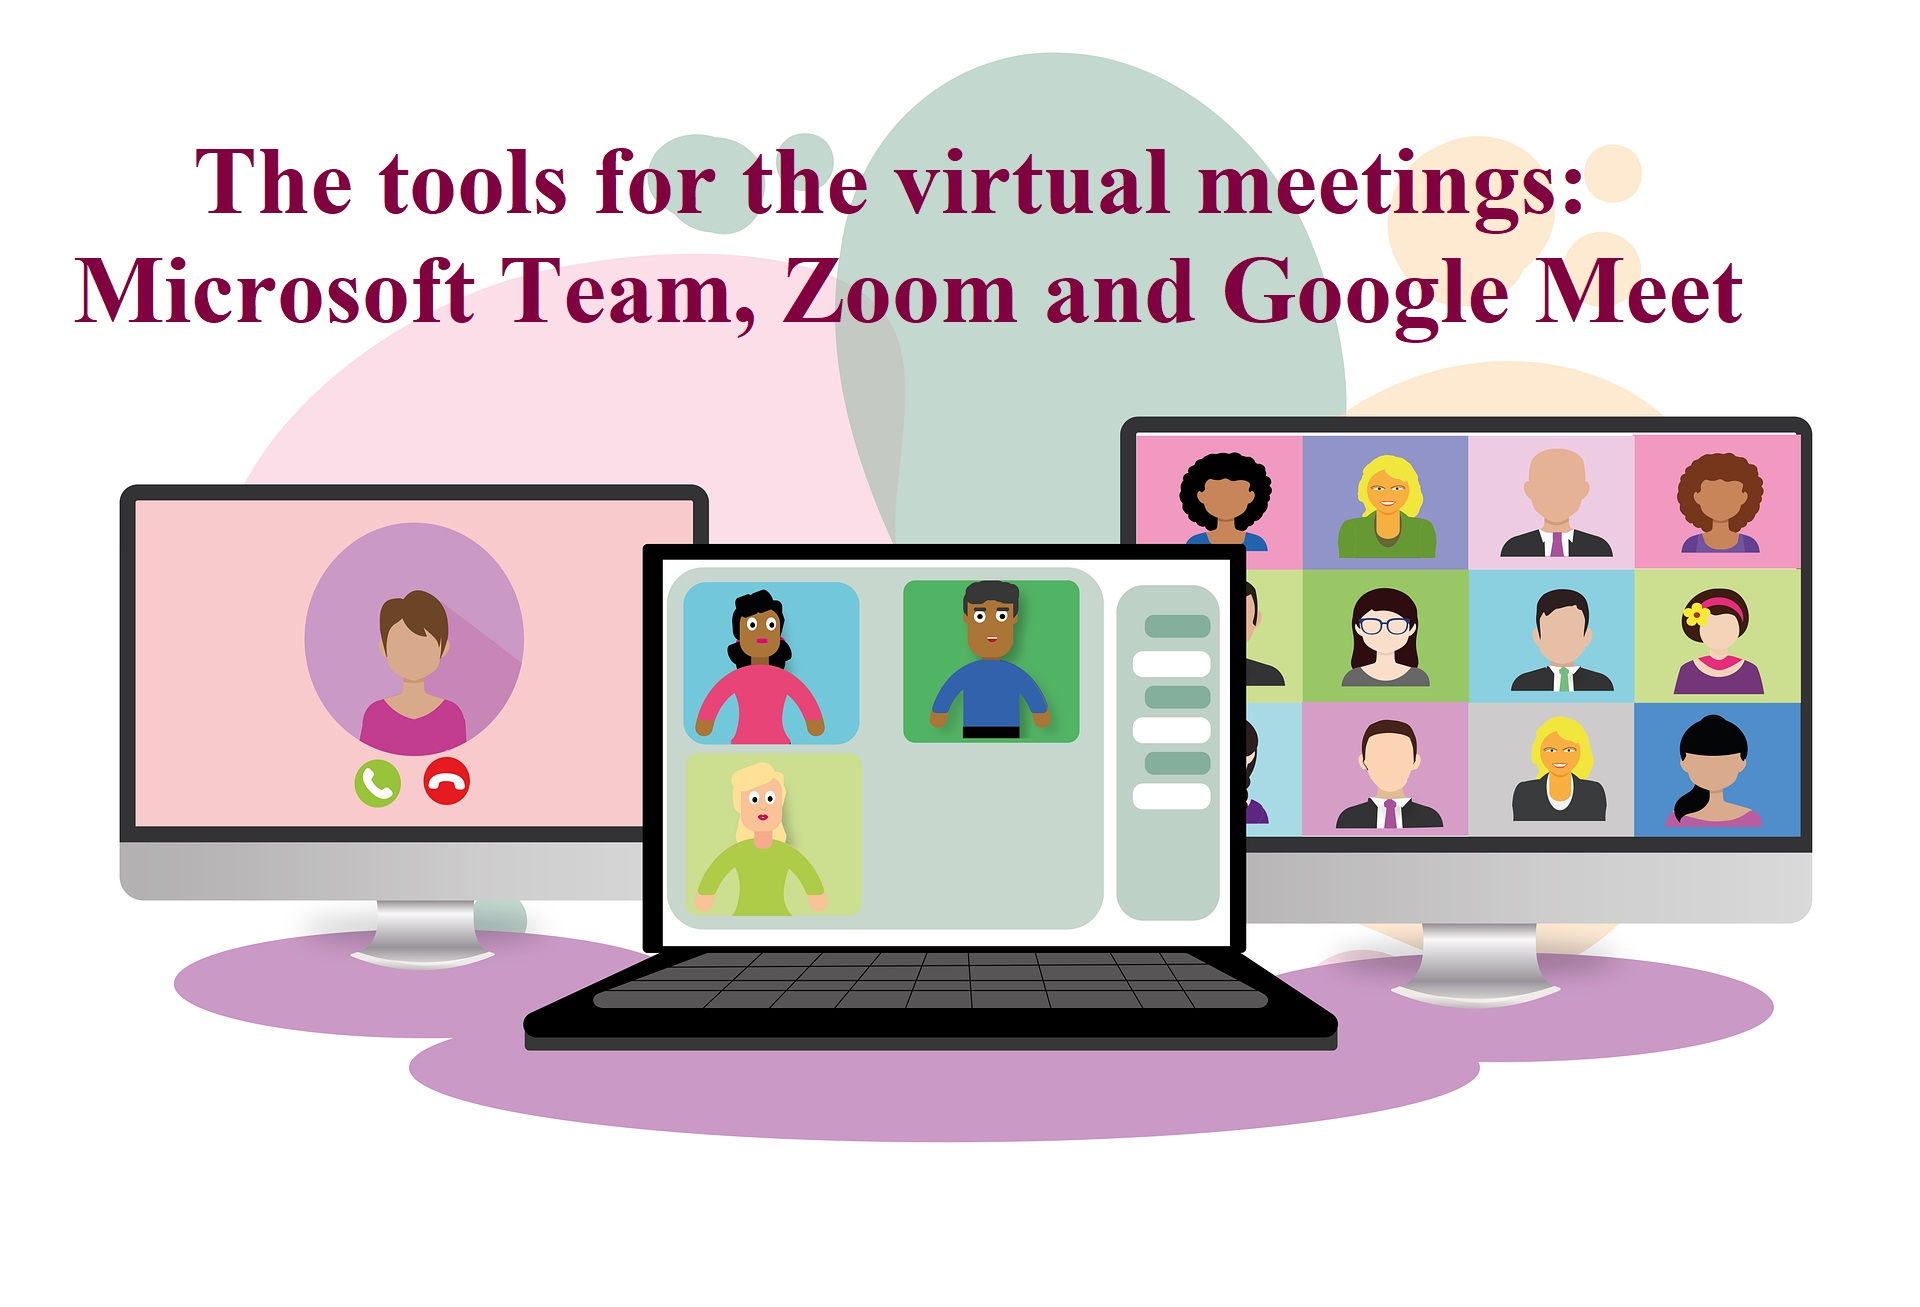 The tools for the virtual meetings Microsoft Team,Zoom and Google Meet